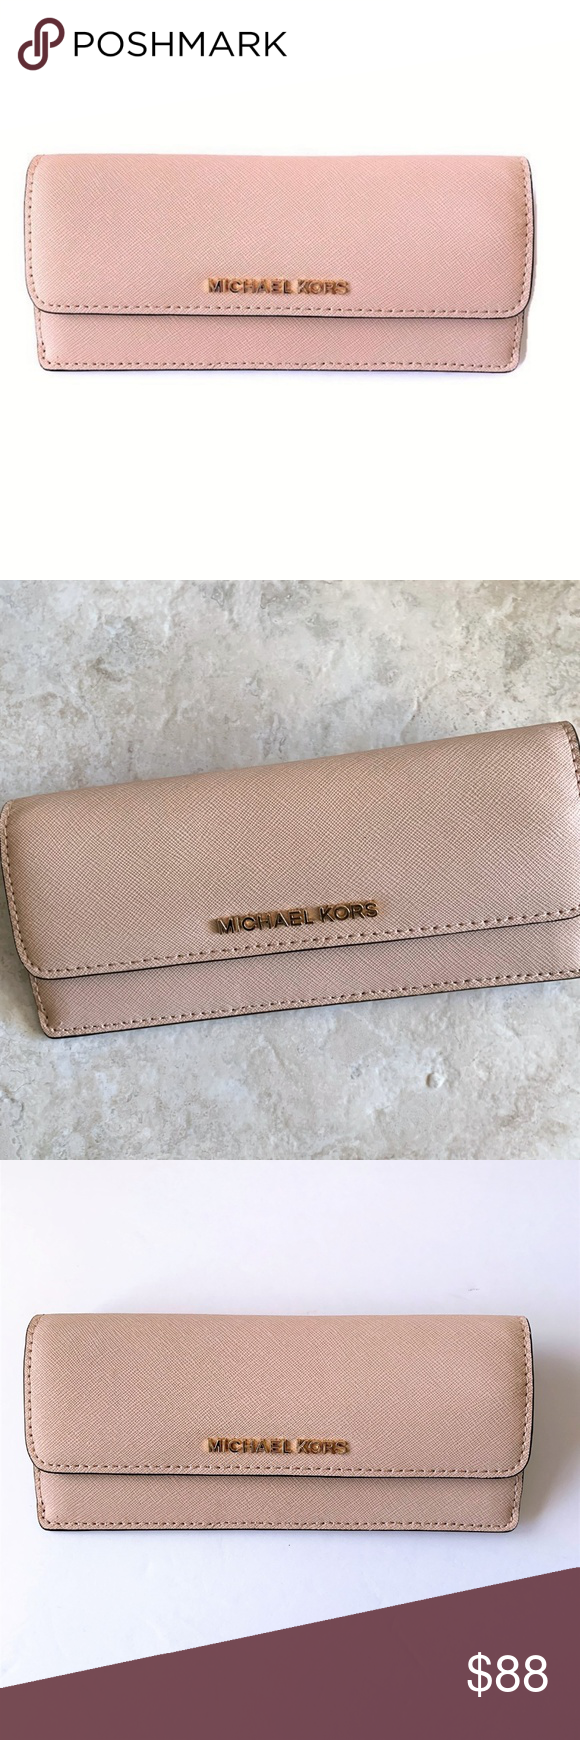 eae8ed9ce1f7 Michael Kors Flat Wallet ~ BALLET Pink Leather NWT Michael Kors Jet Set  Travel Flat Wallet